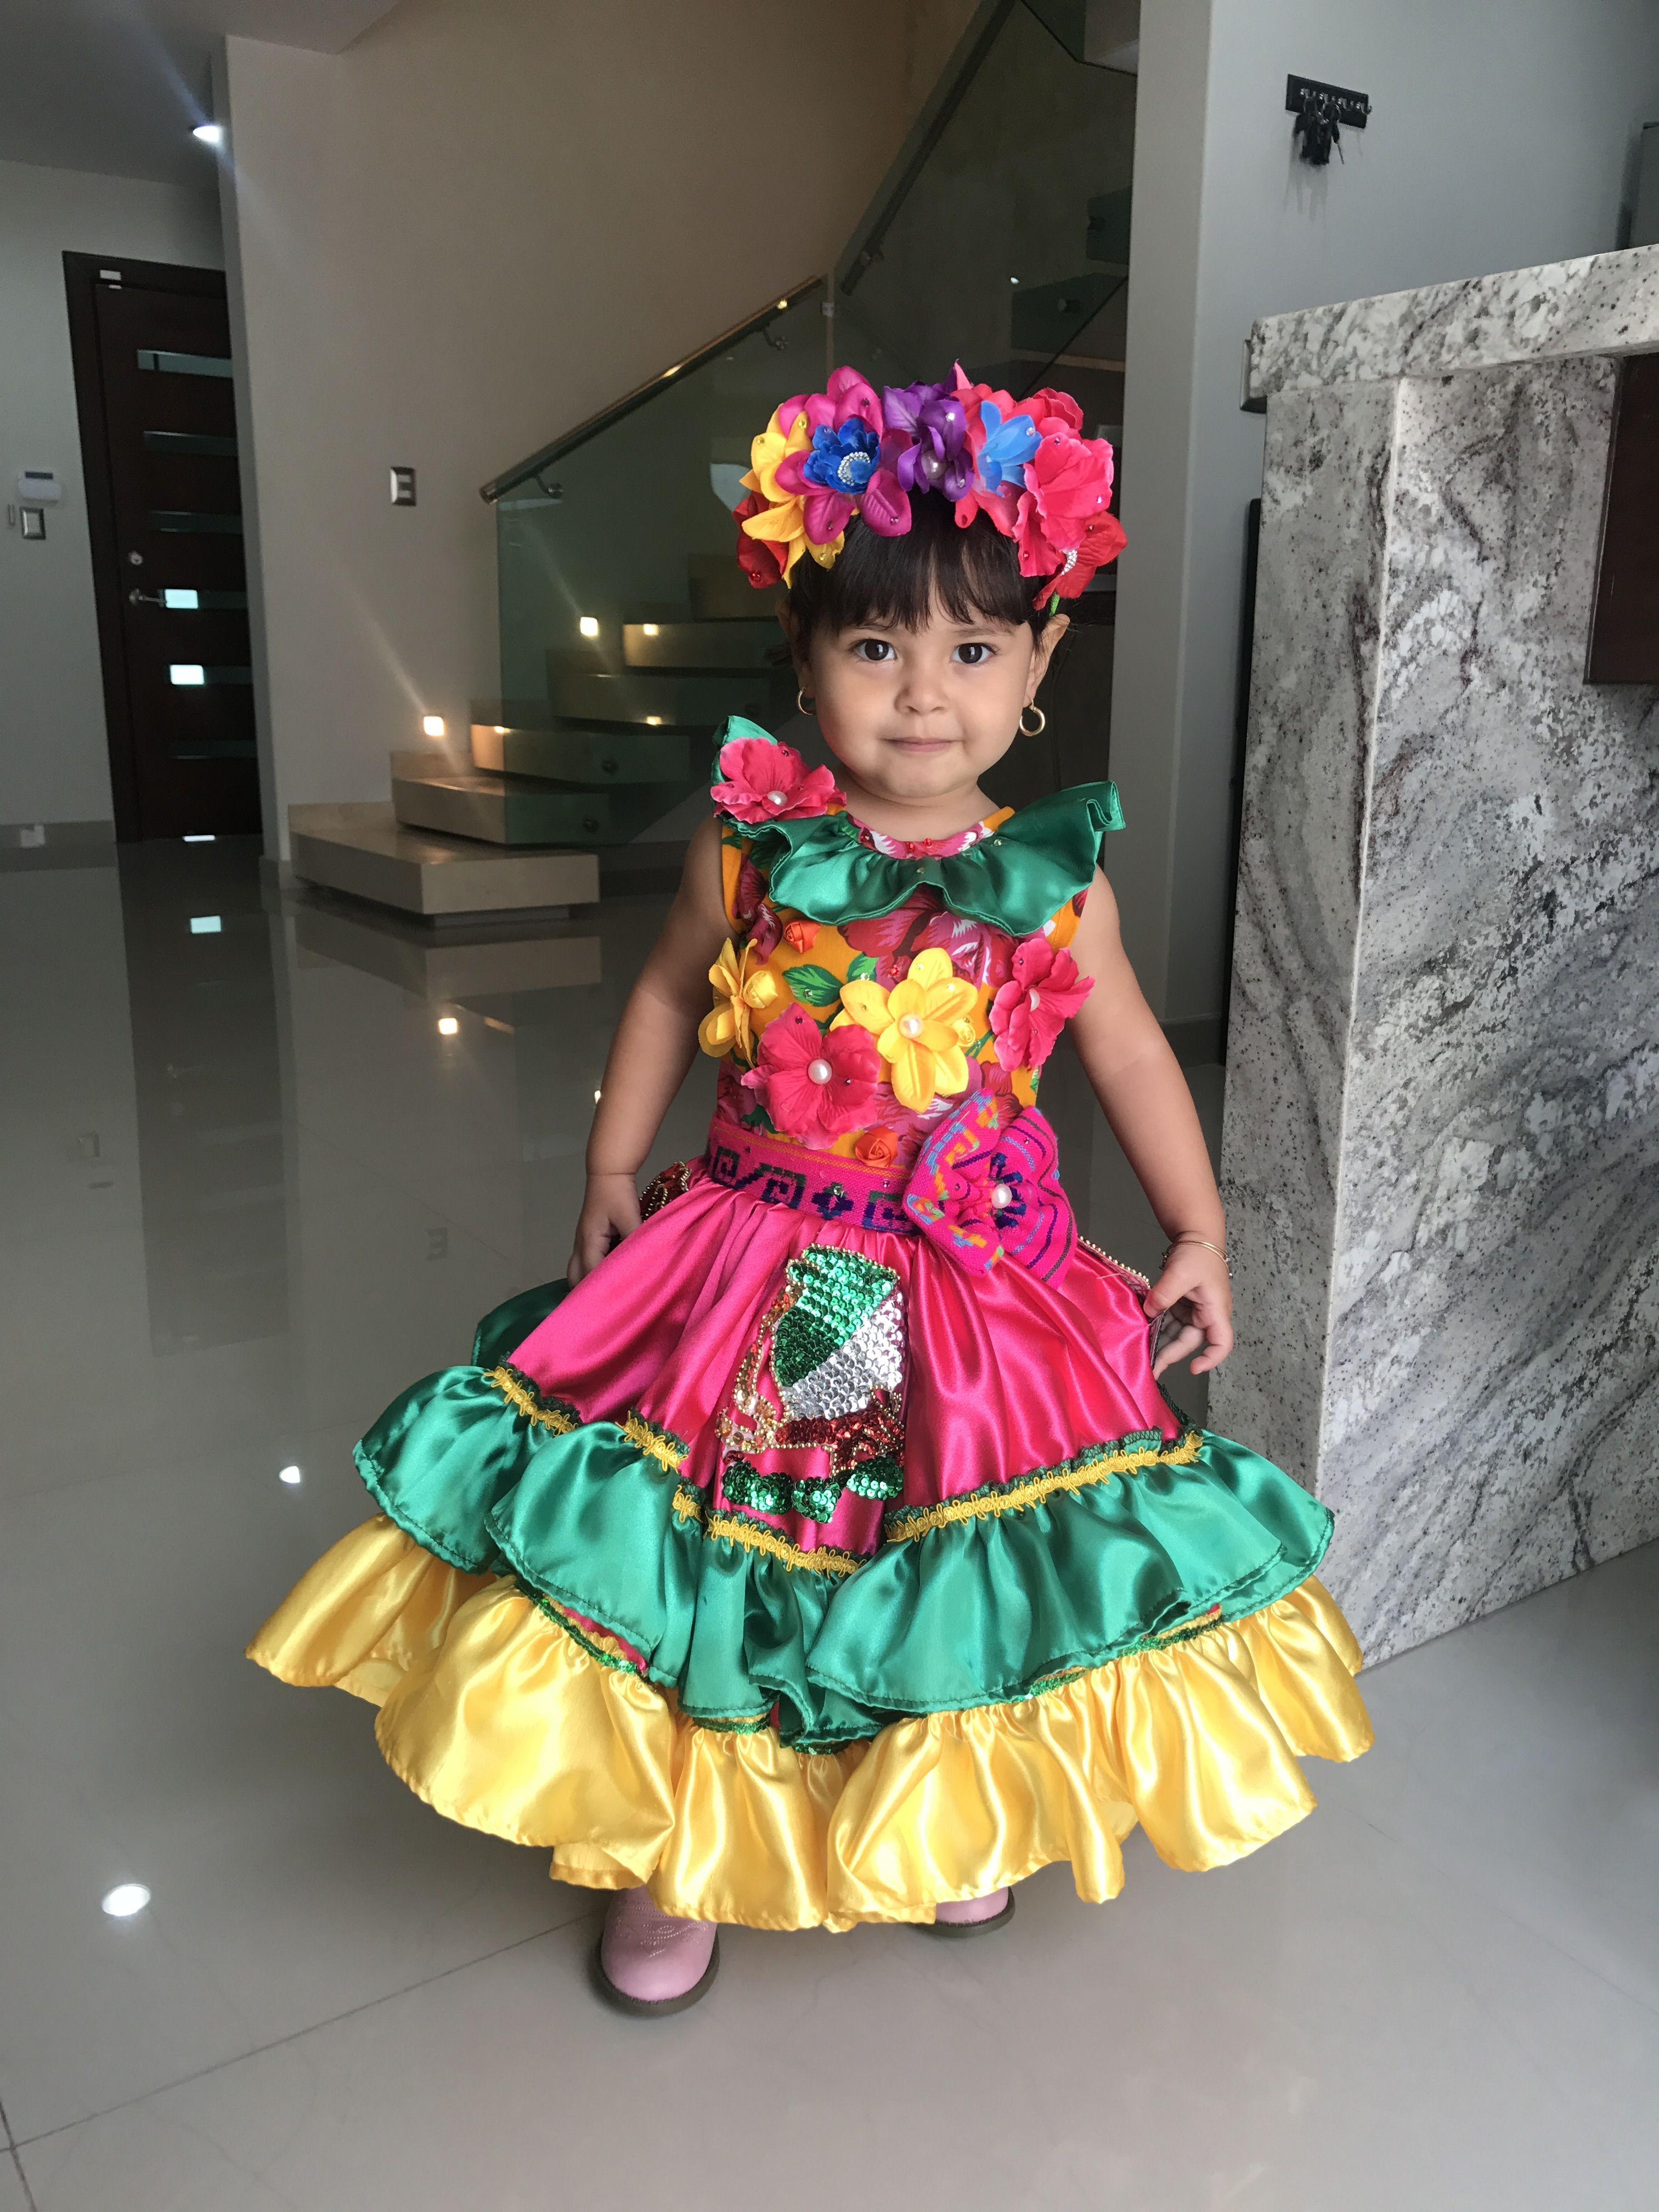 Pin De Alma Soto En Cute Things En 2019 Vestidos Mexicanos